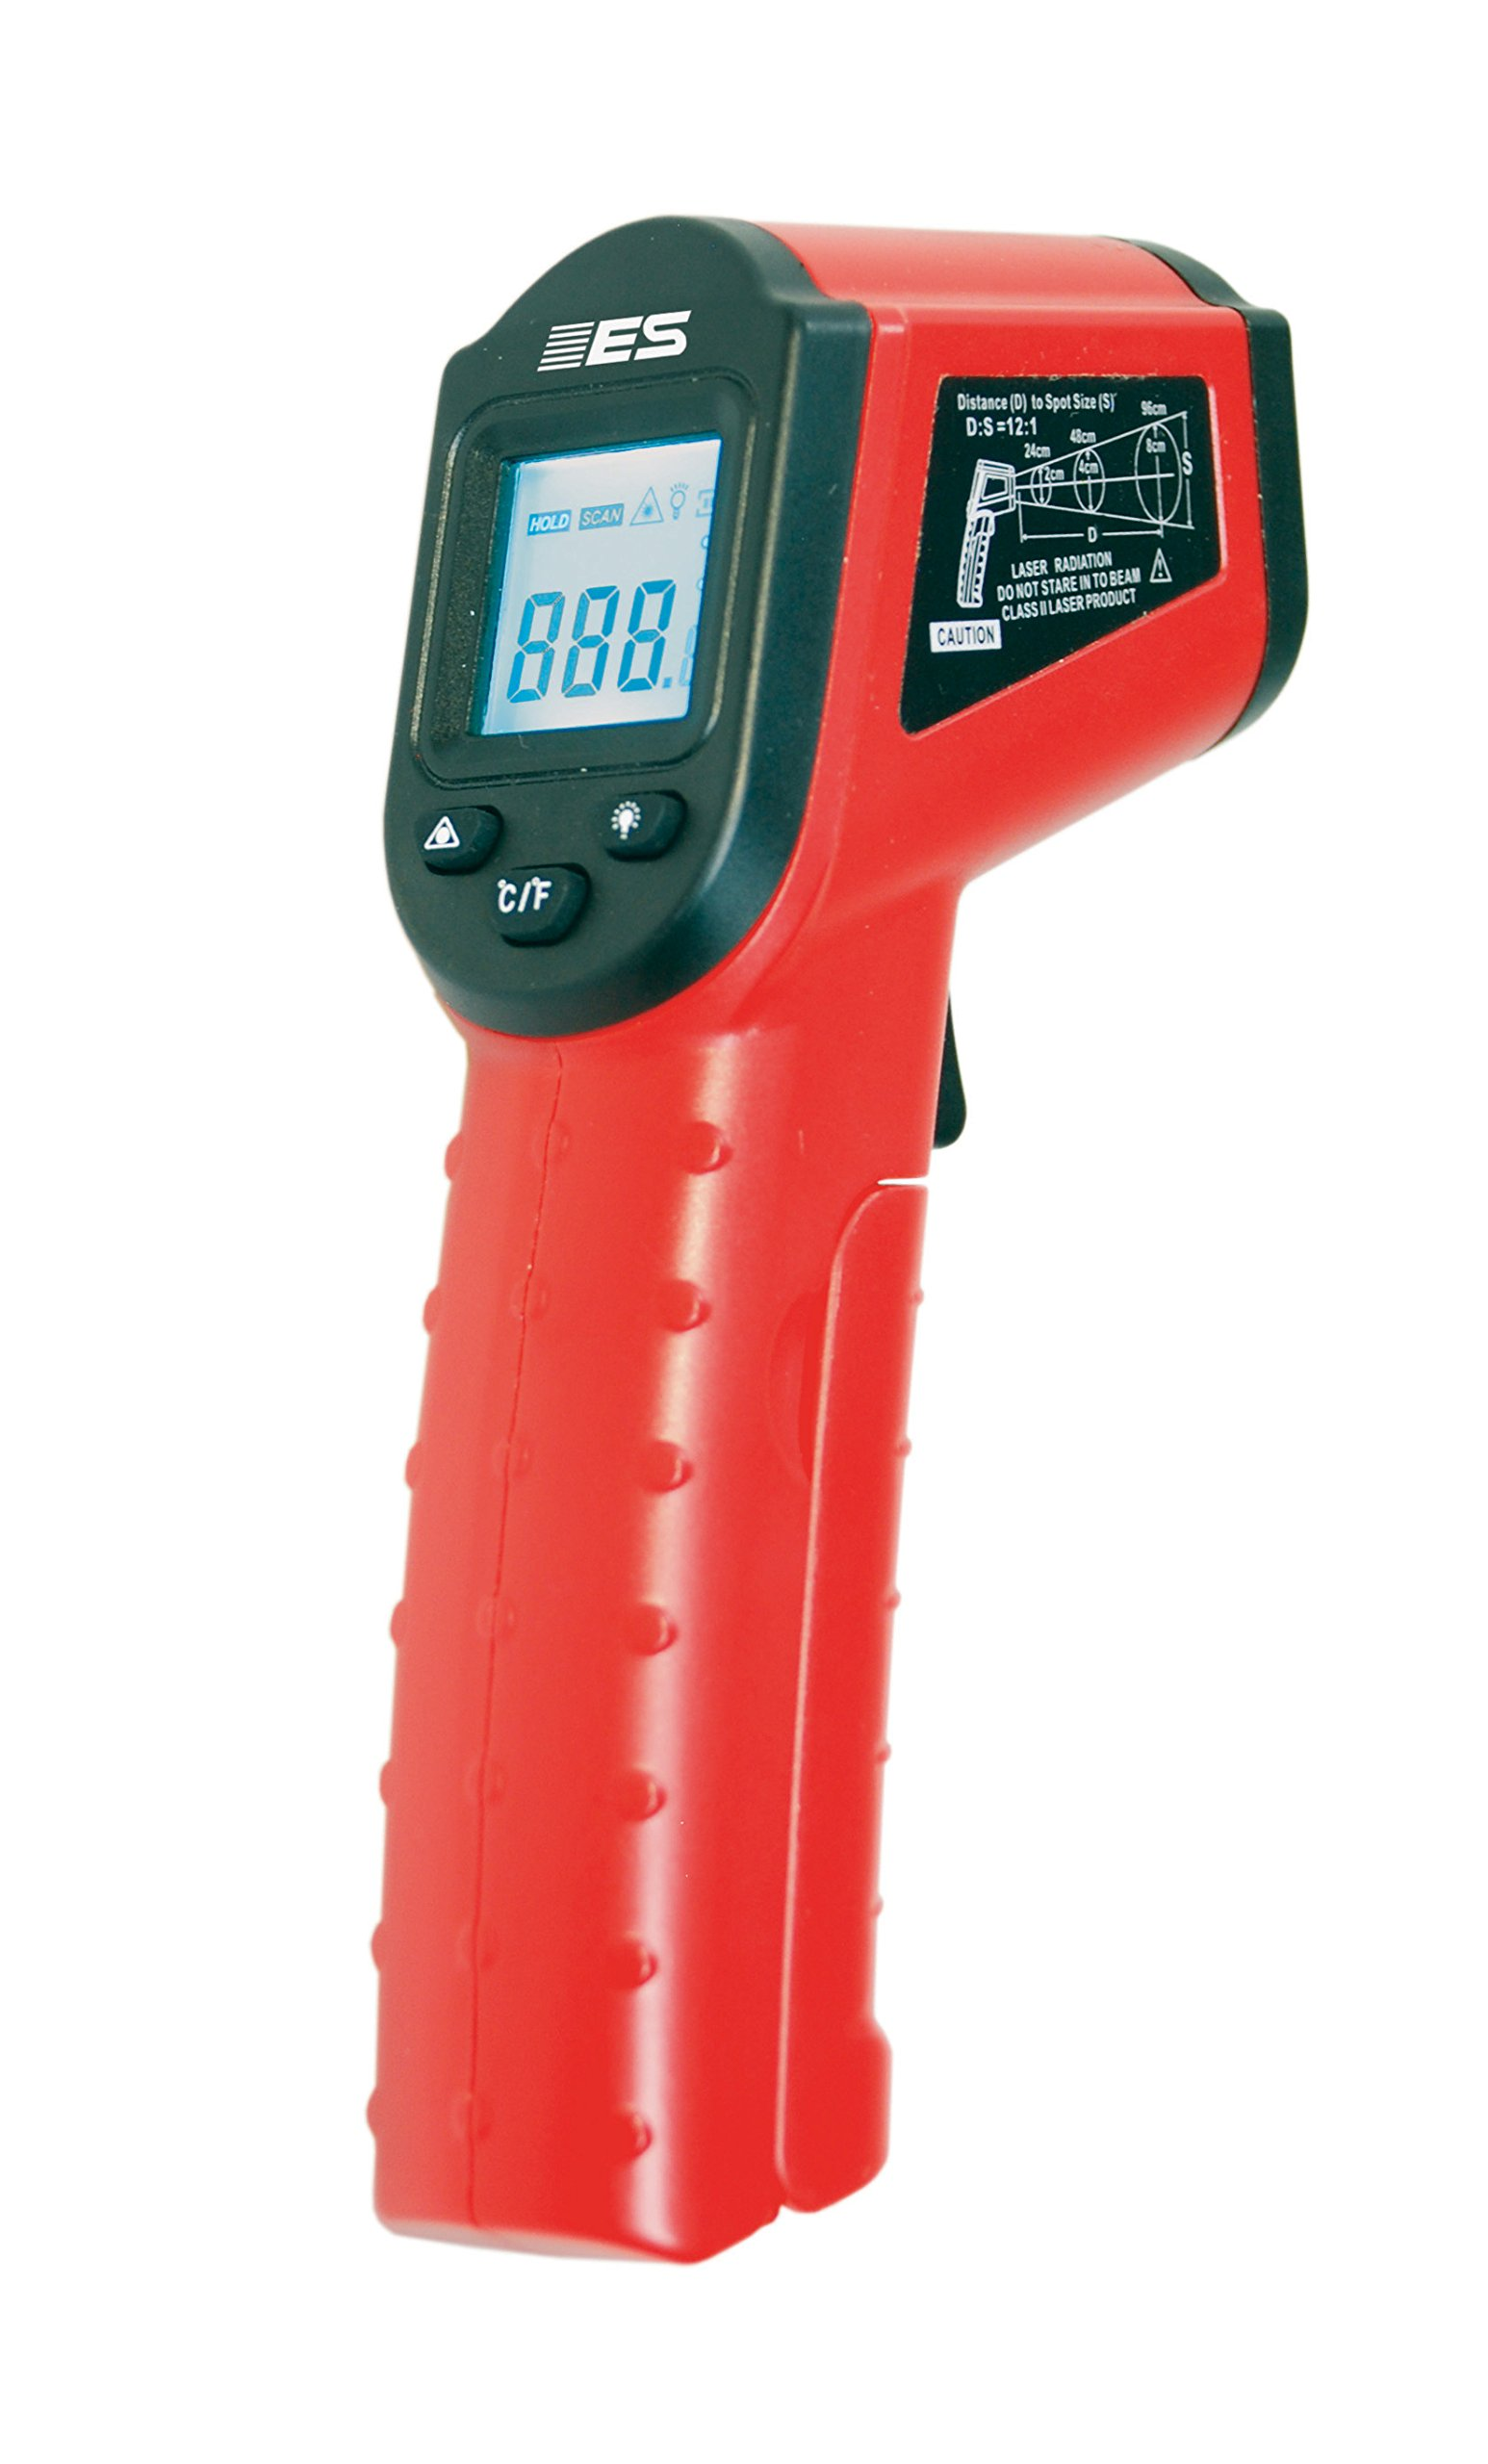 Electronic Specialties EST-45 Red 6.5'' x 3.5'' x 1.5'' Non-Contact Infrared Thermometer with Laser Pointer